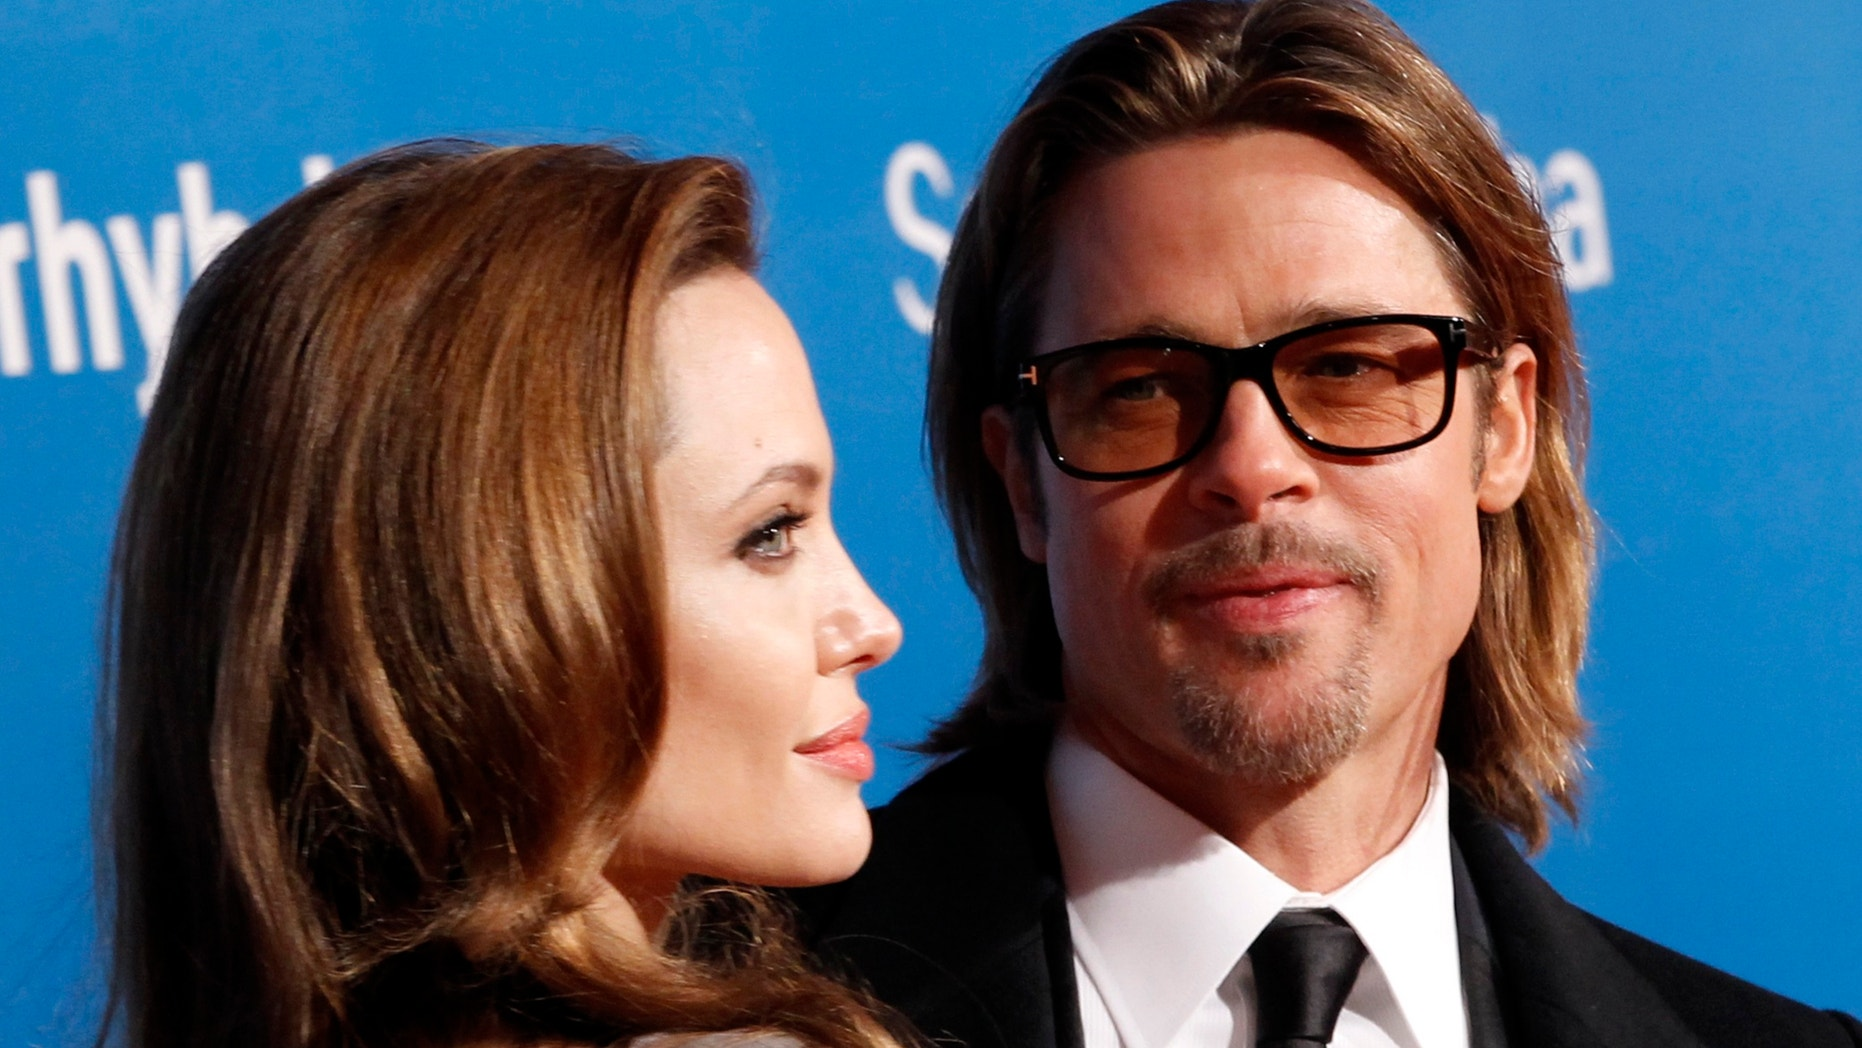 Brad Pitt was involved in a three-car accident in Los Angeles on Feb. 7. His official split from Angelina Jolie is still in talks.